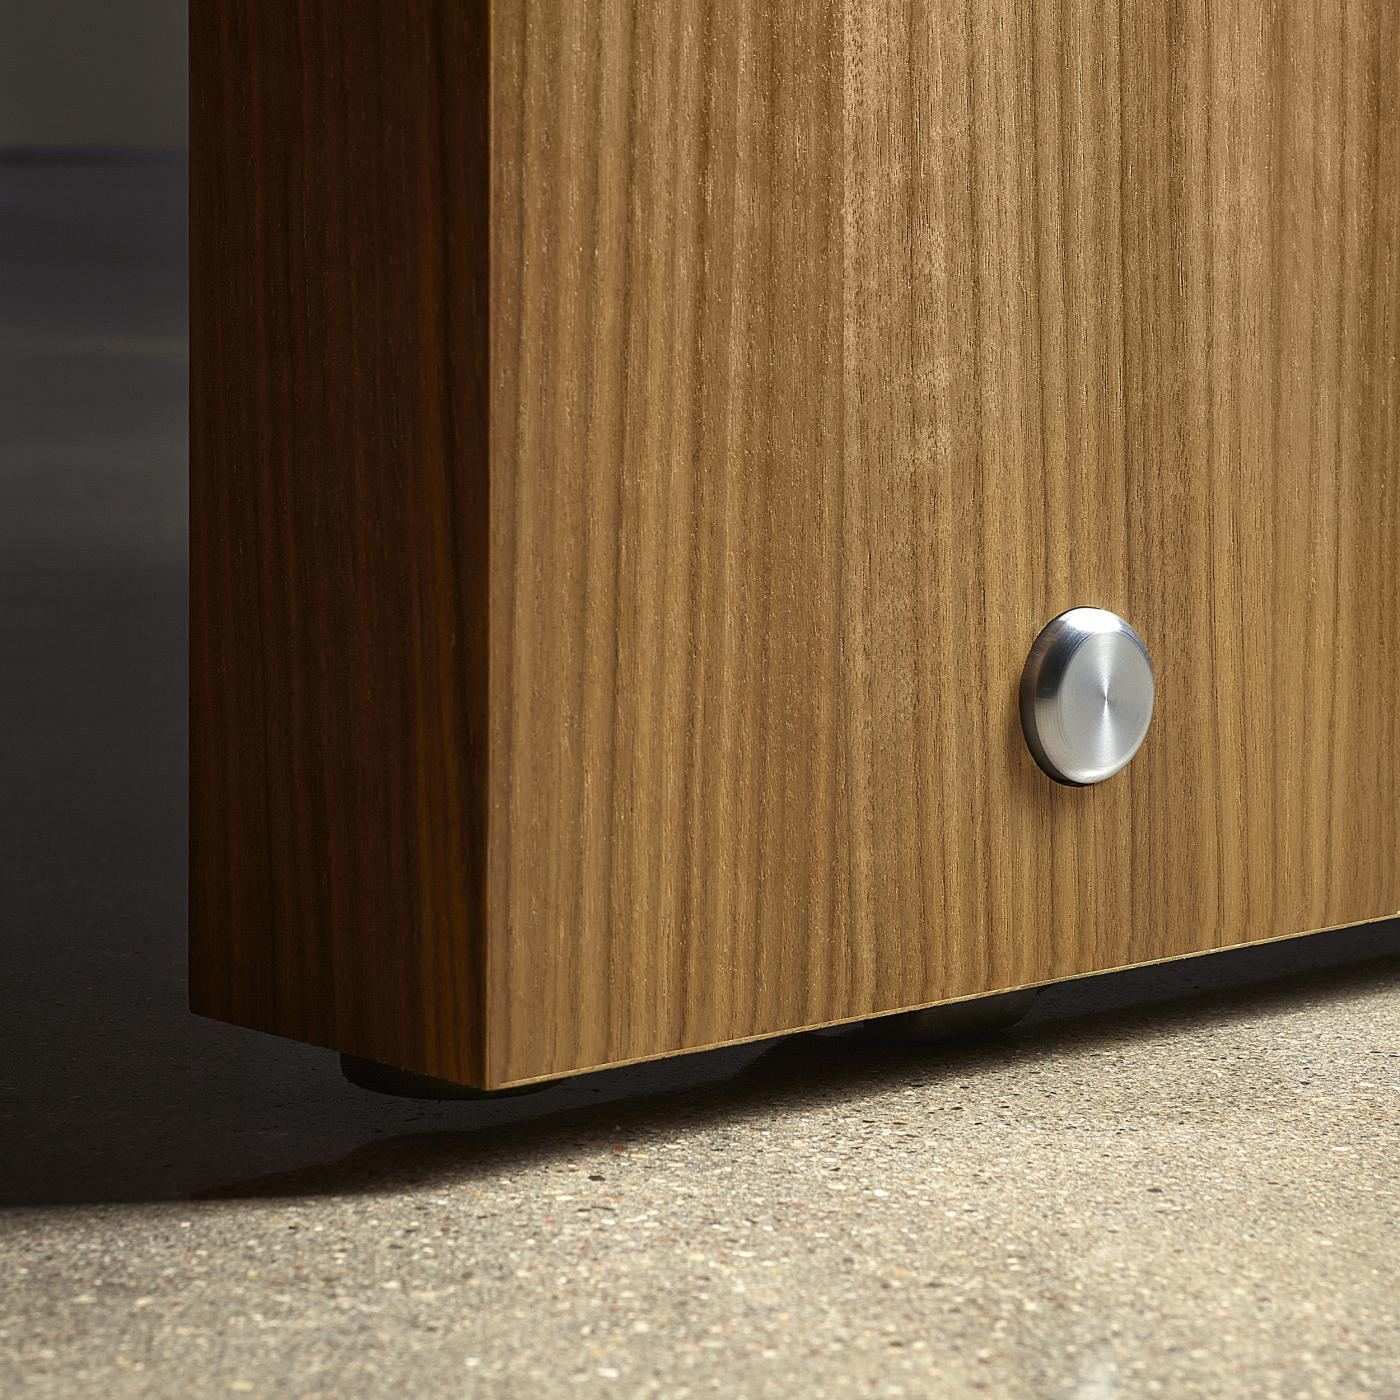 Stainless steel pins subtly express innovative, integral casters.